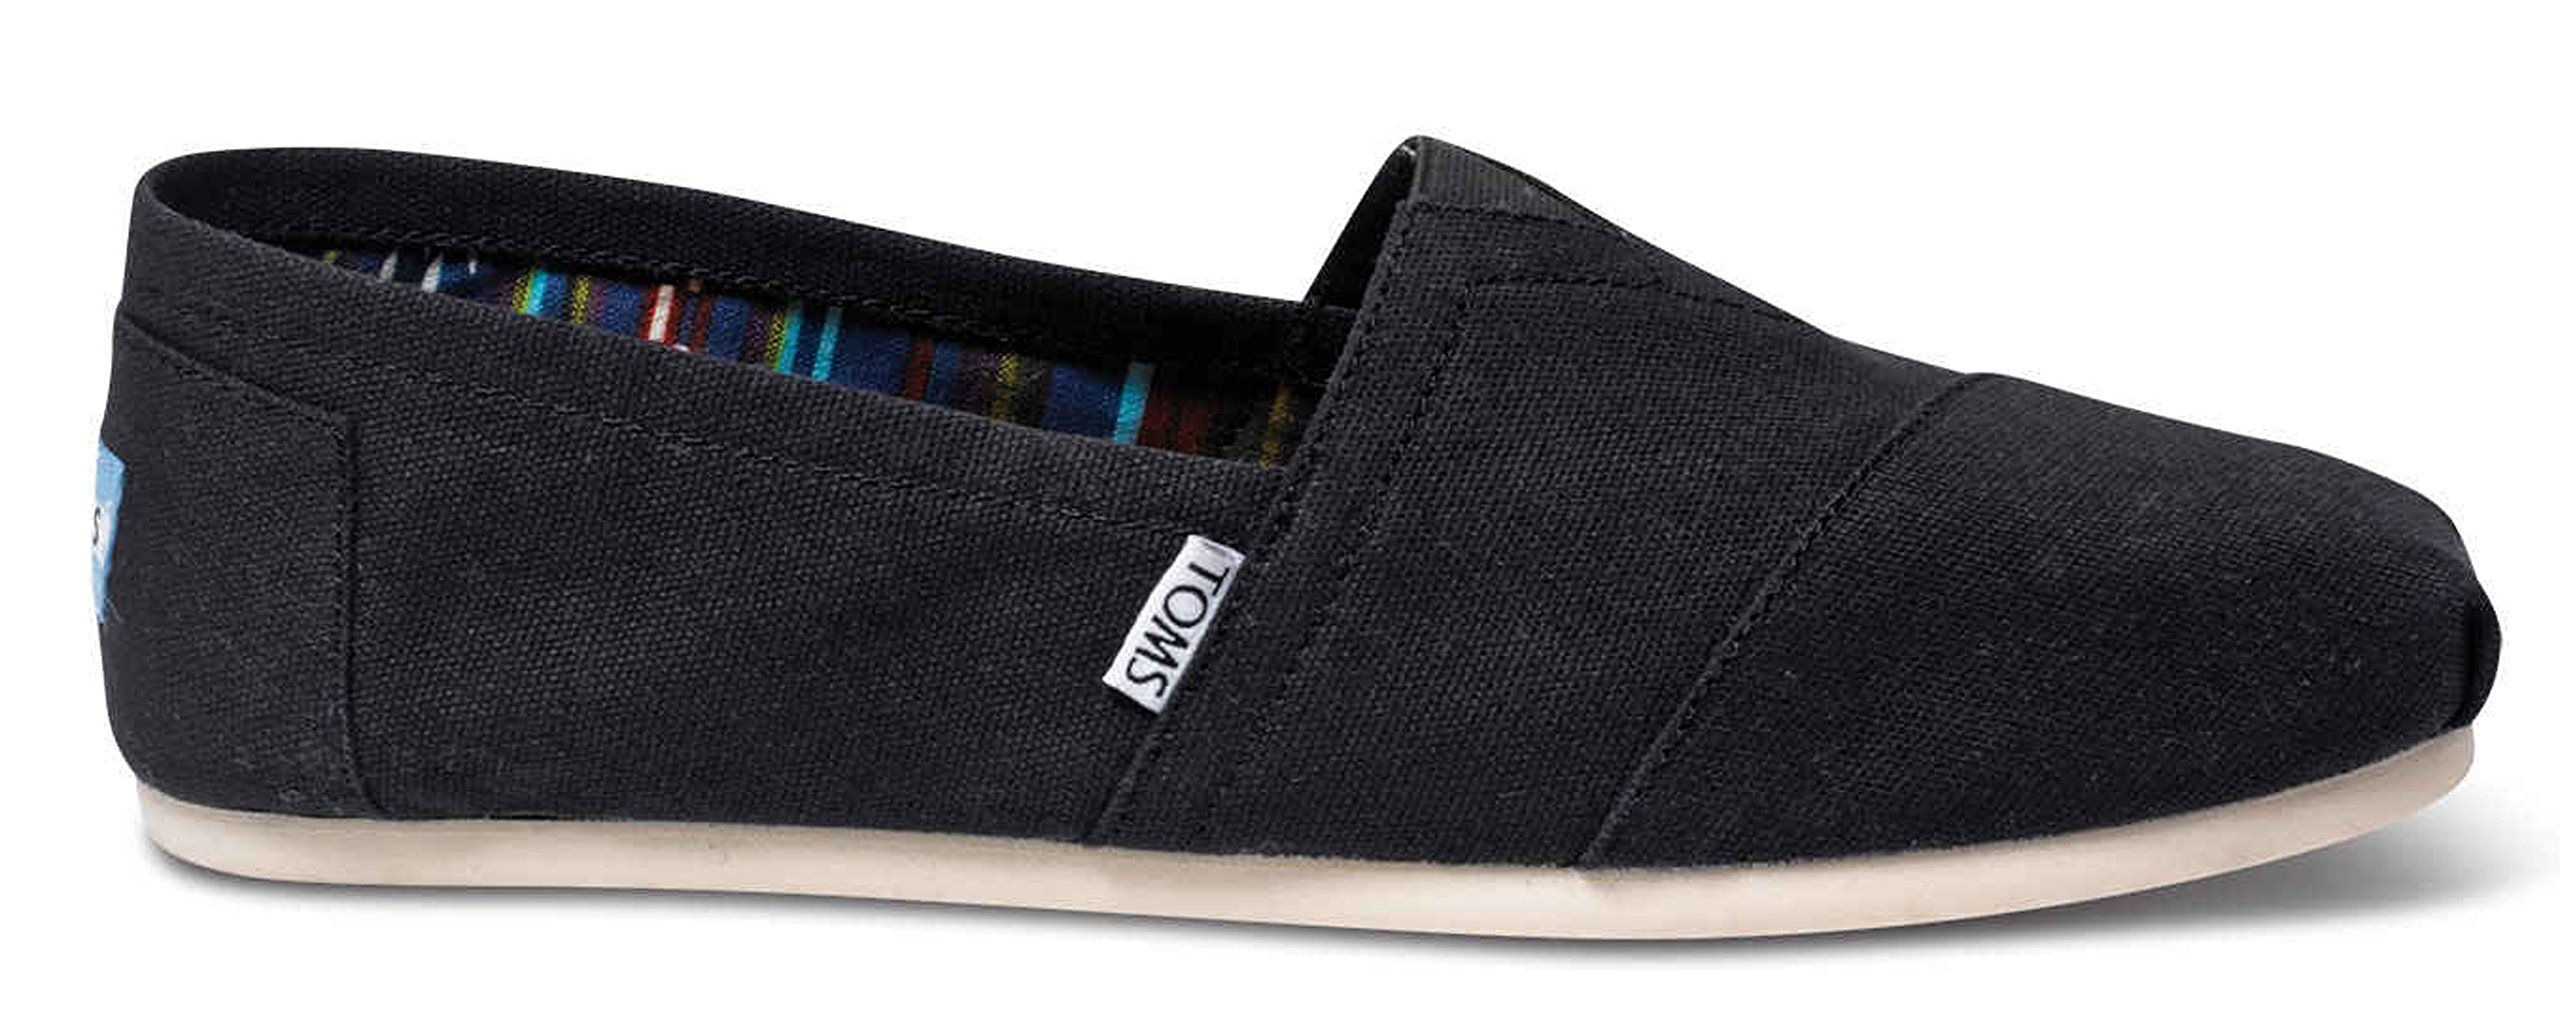 TOMS Men's Alpargata Canvas Black Ankle-High Flat Shoe - 11M